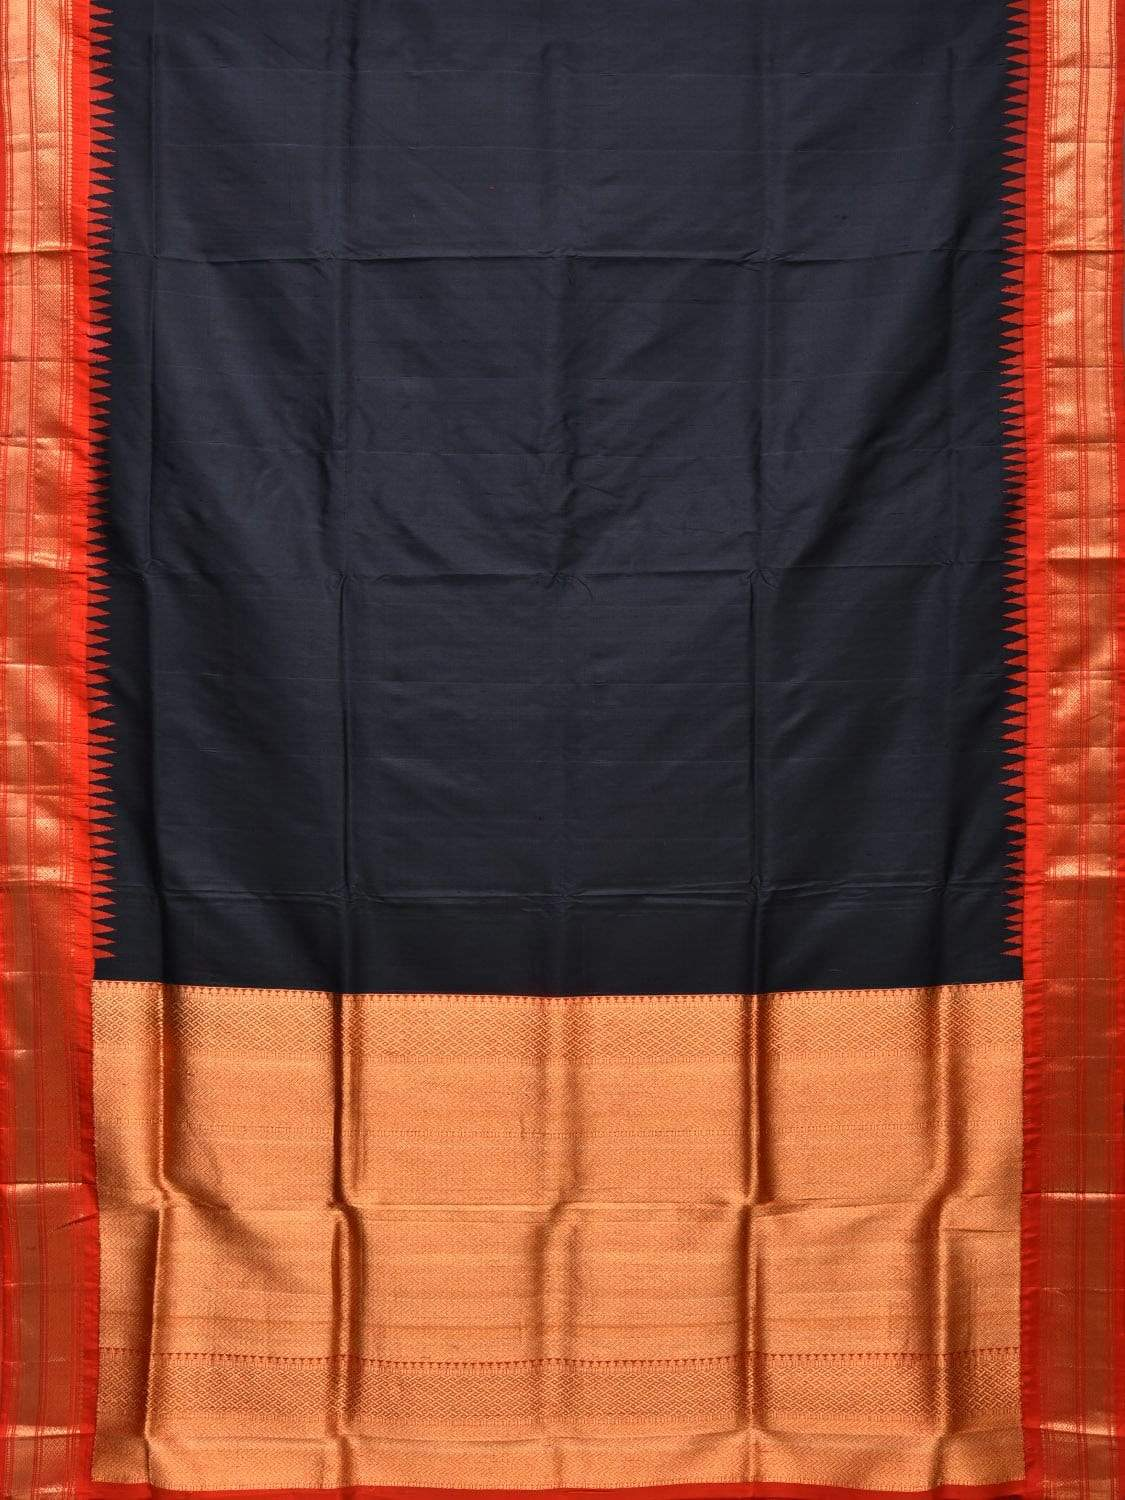 Black and Red Gadwal Silk Handloom Plain Saree with Temple Border Design g0255